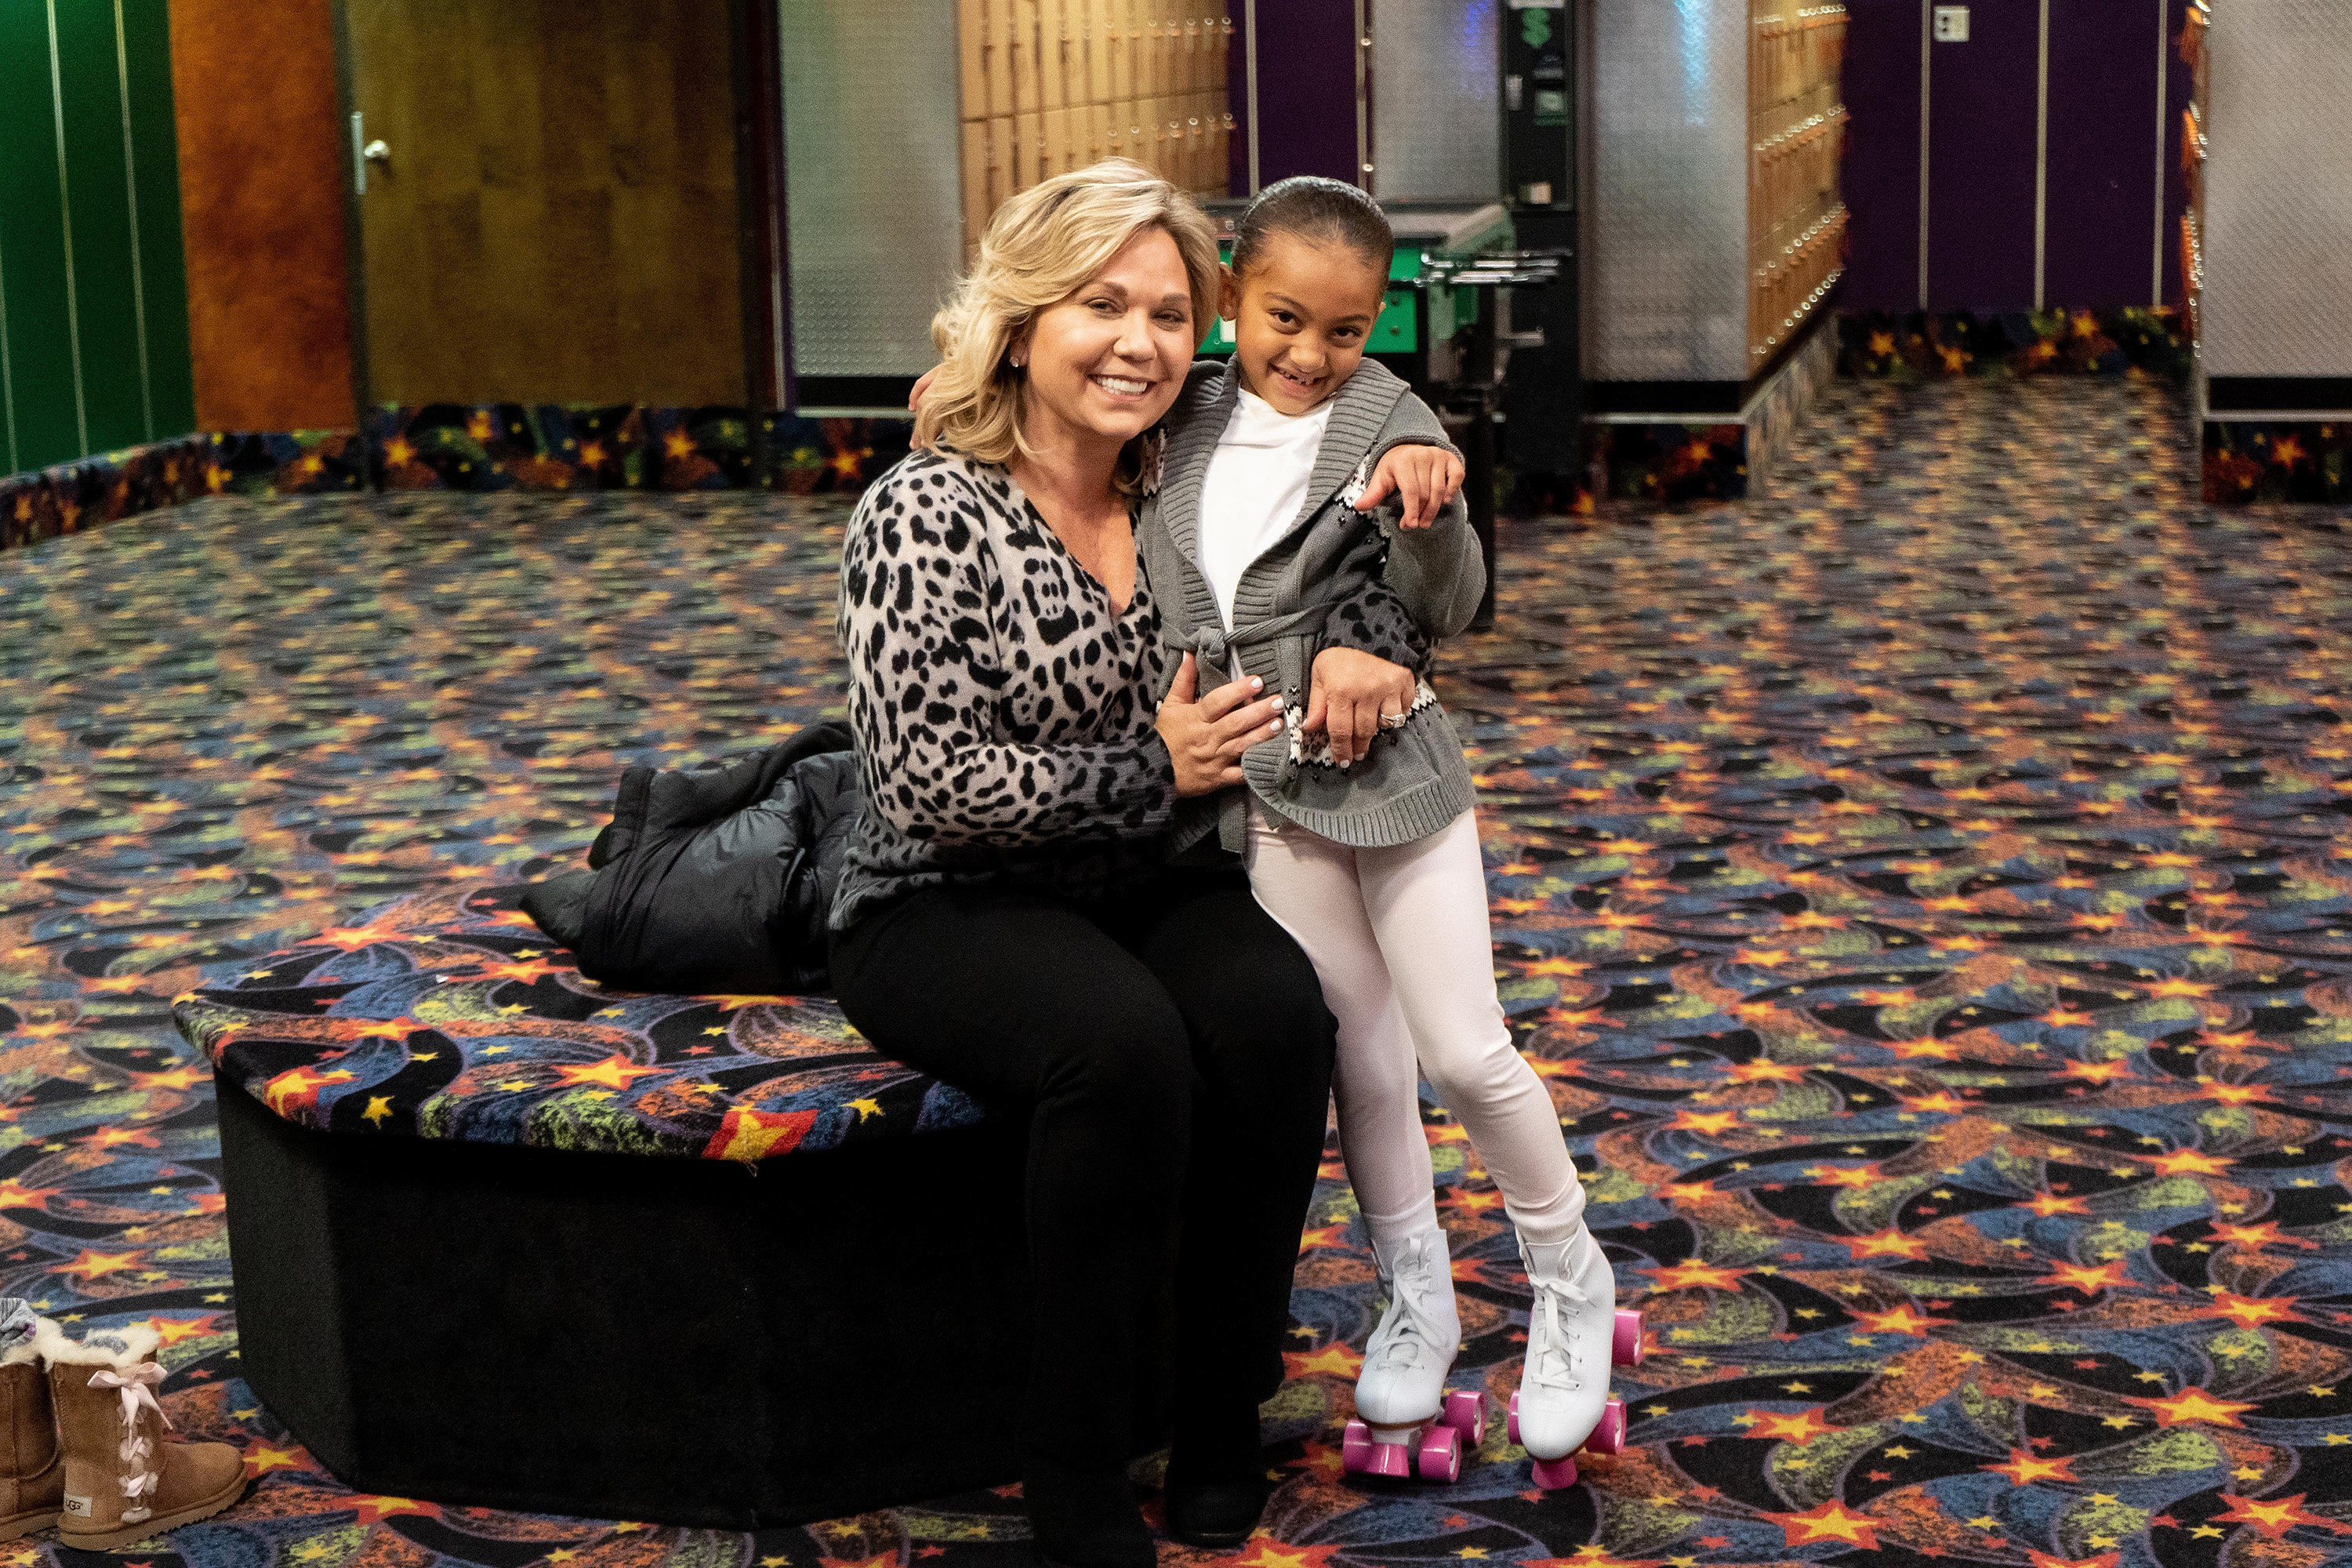 """Chloe Chrisley and Julie Chrisley on an episode of """"Roller Skates and Senior Dates.""""  Source  